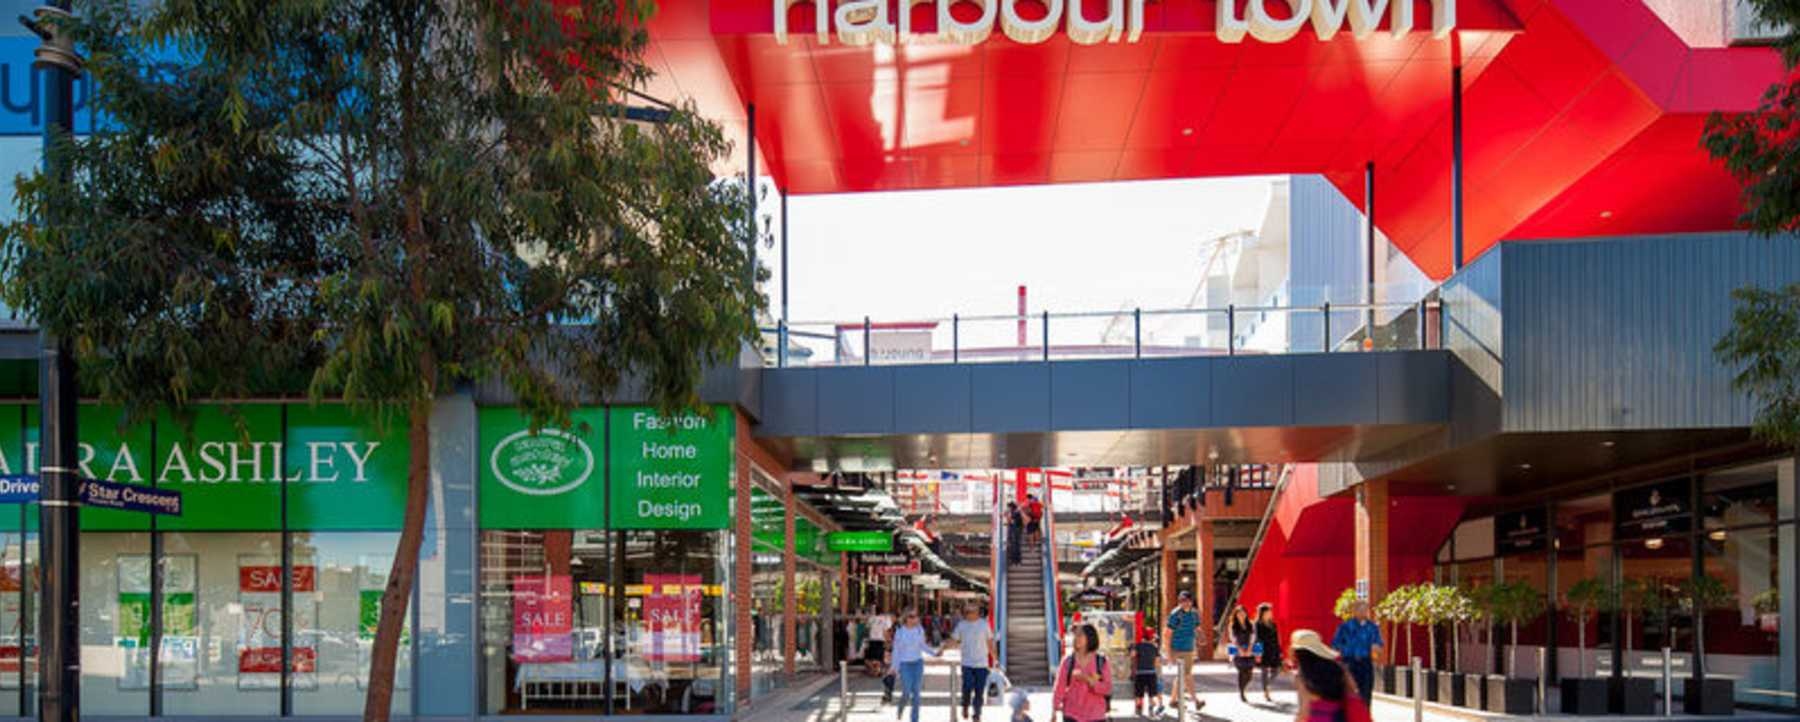 Harbour Town Shopping Centre Docklands